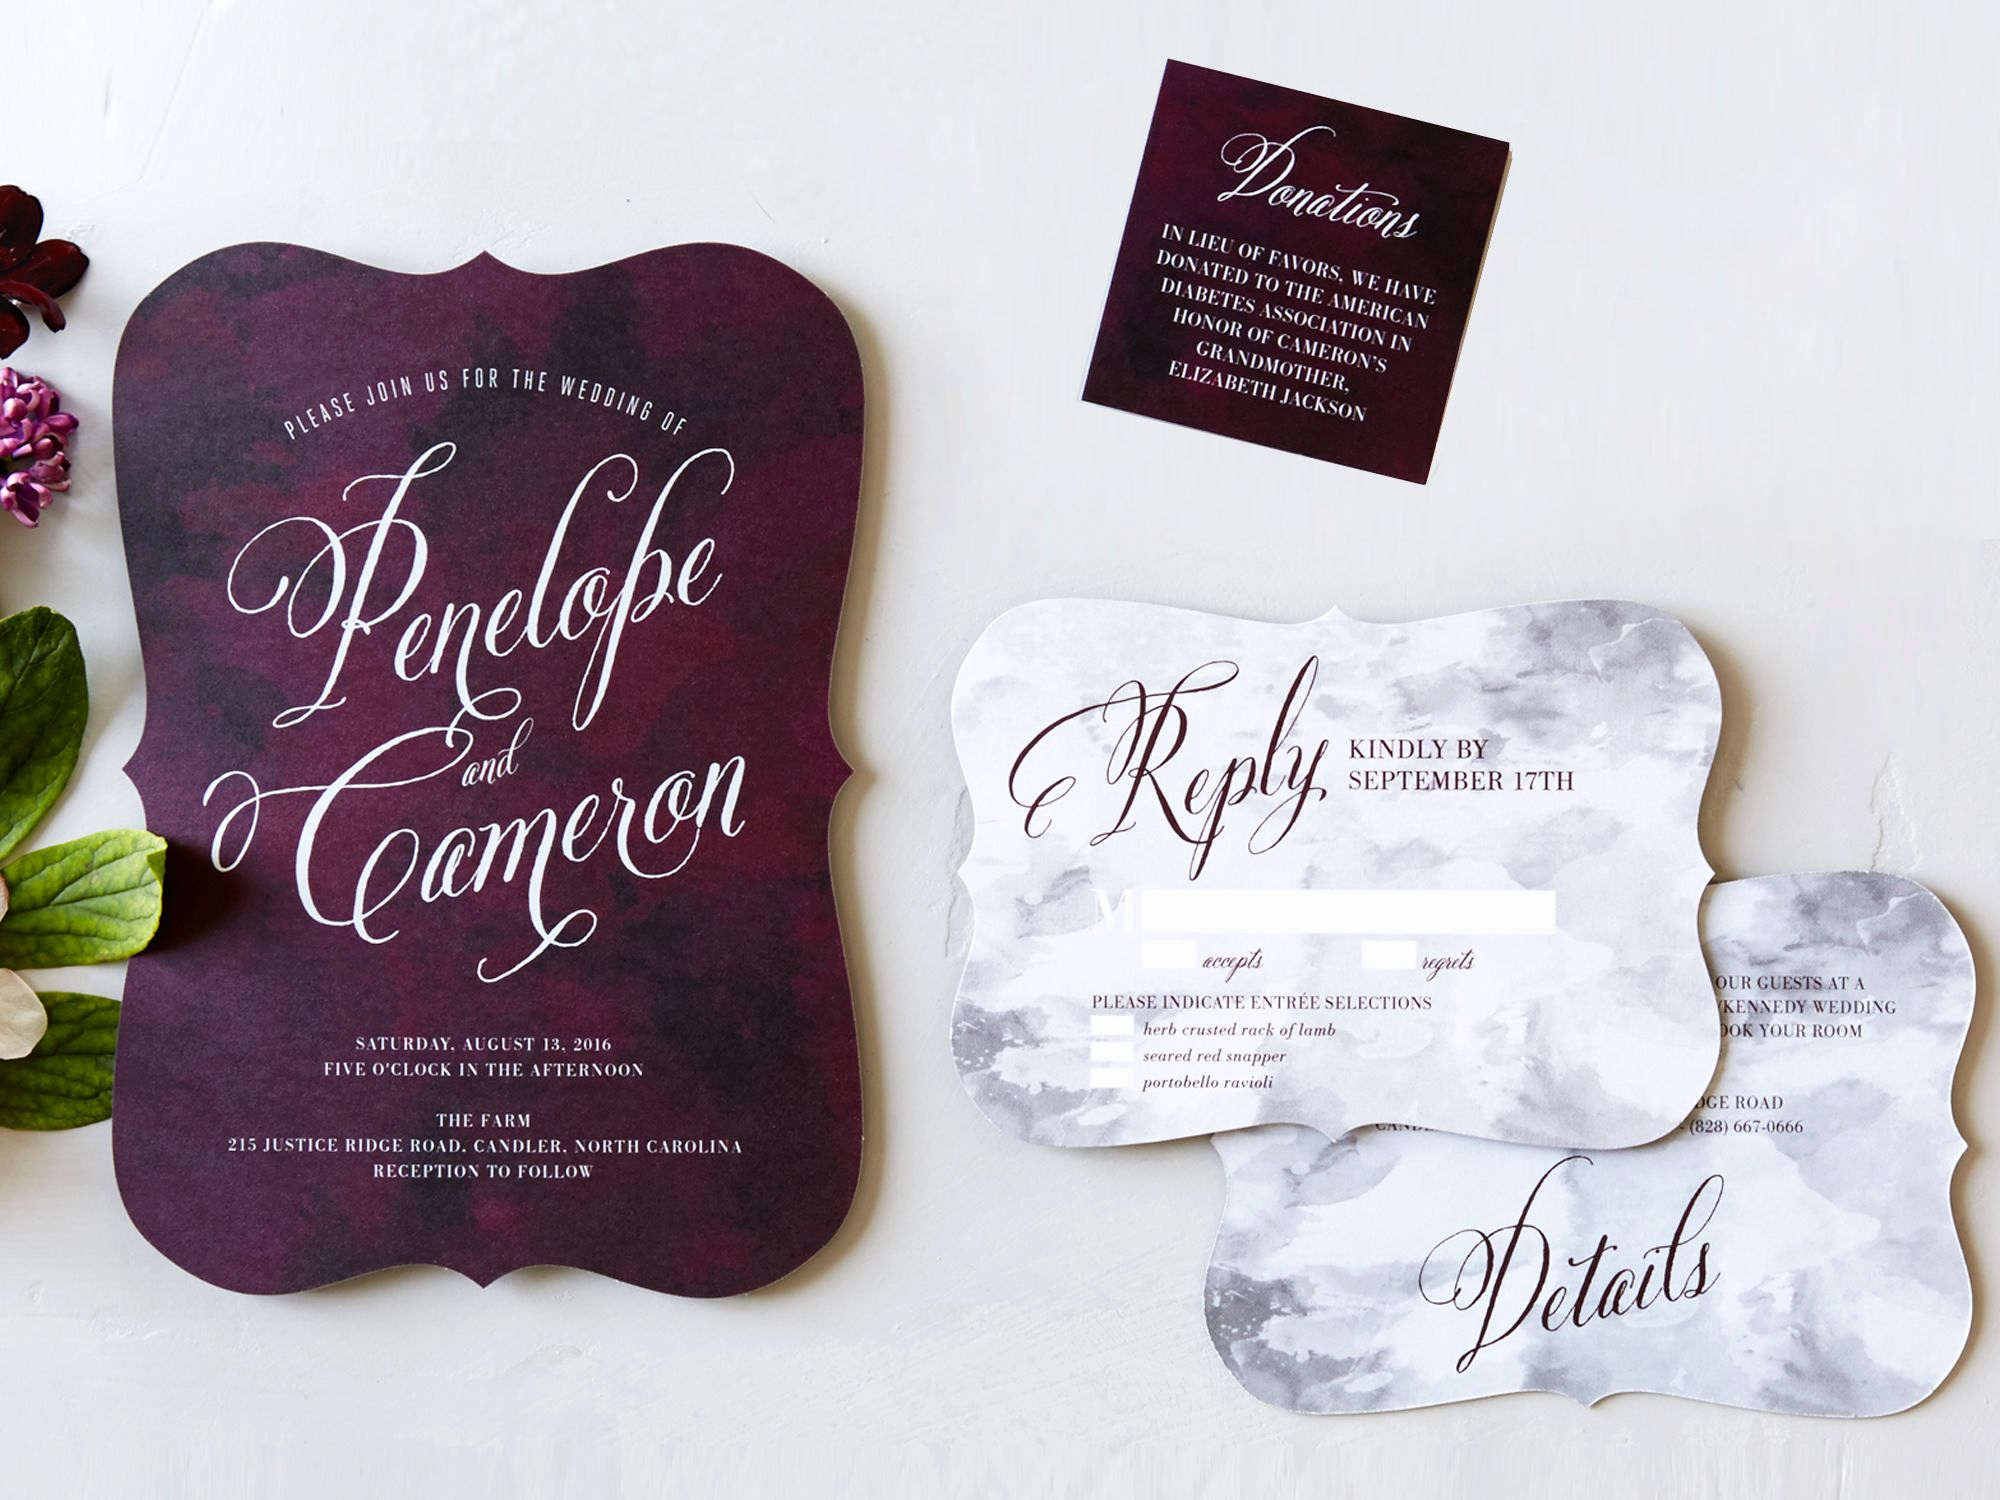 Wedding Invitation Trends 2017 Inspirational 8 Hot Wedding Invitation Trends